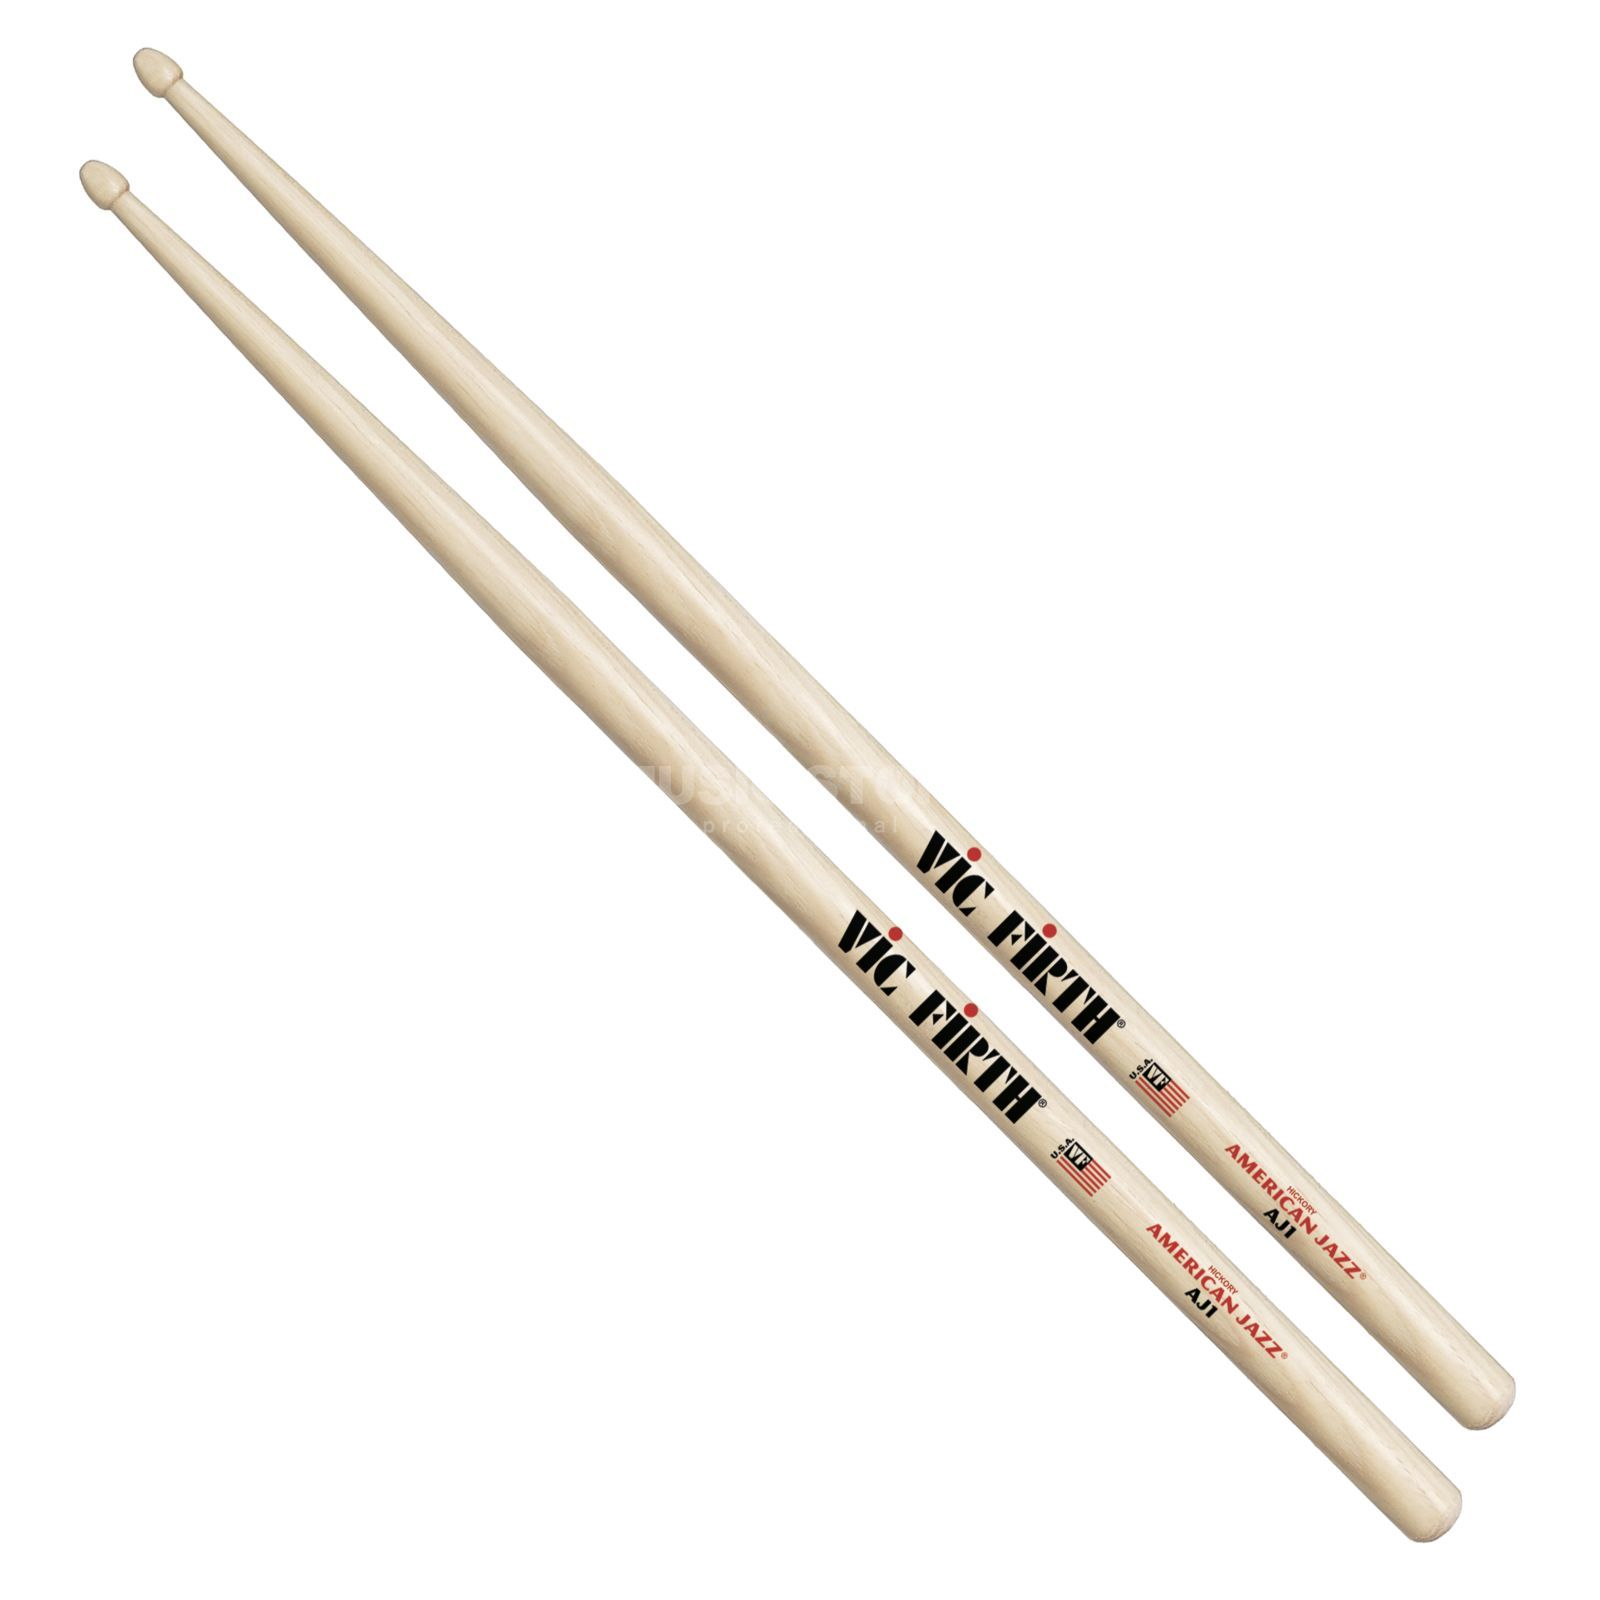 Vic-Firth AJ1 Sticks, American Jazz, Wood Tip Product Image